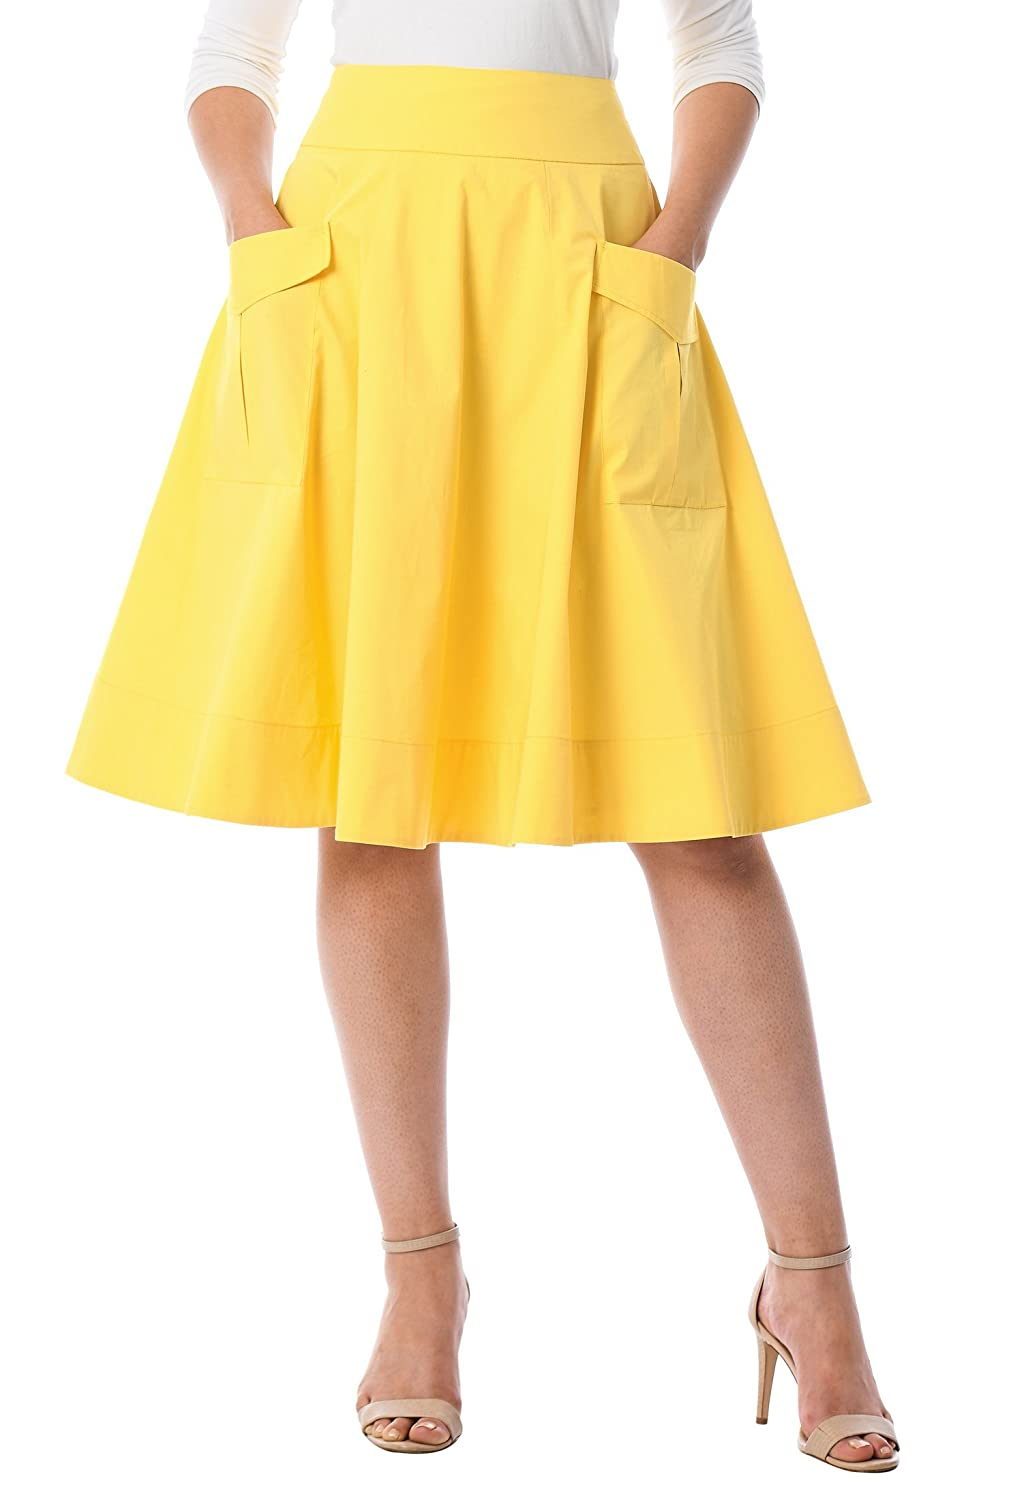 1950s swing skirt poodle skirt pencil skirts